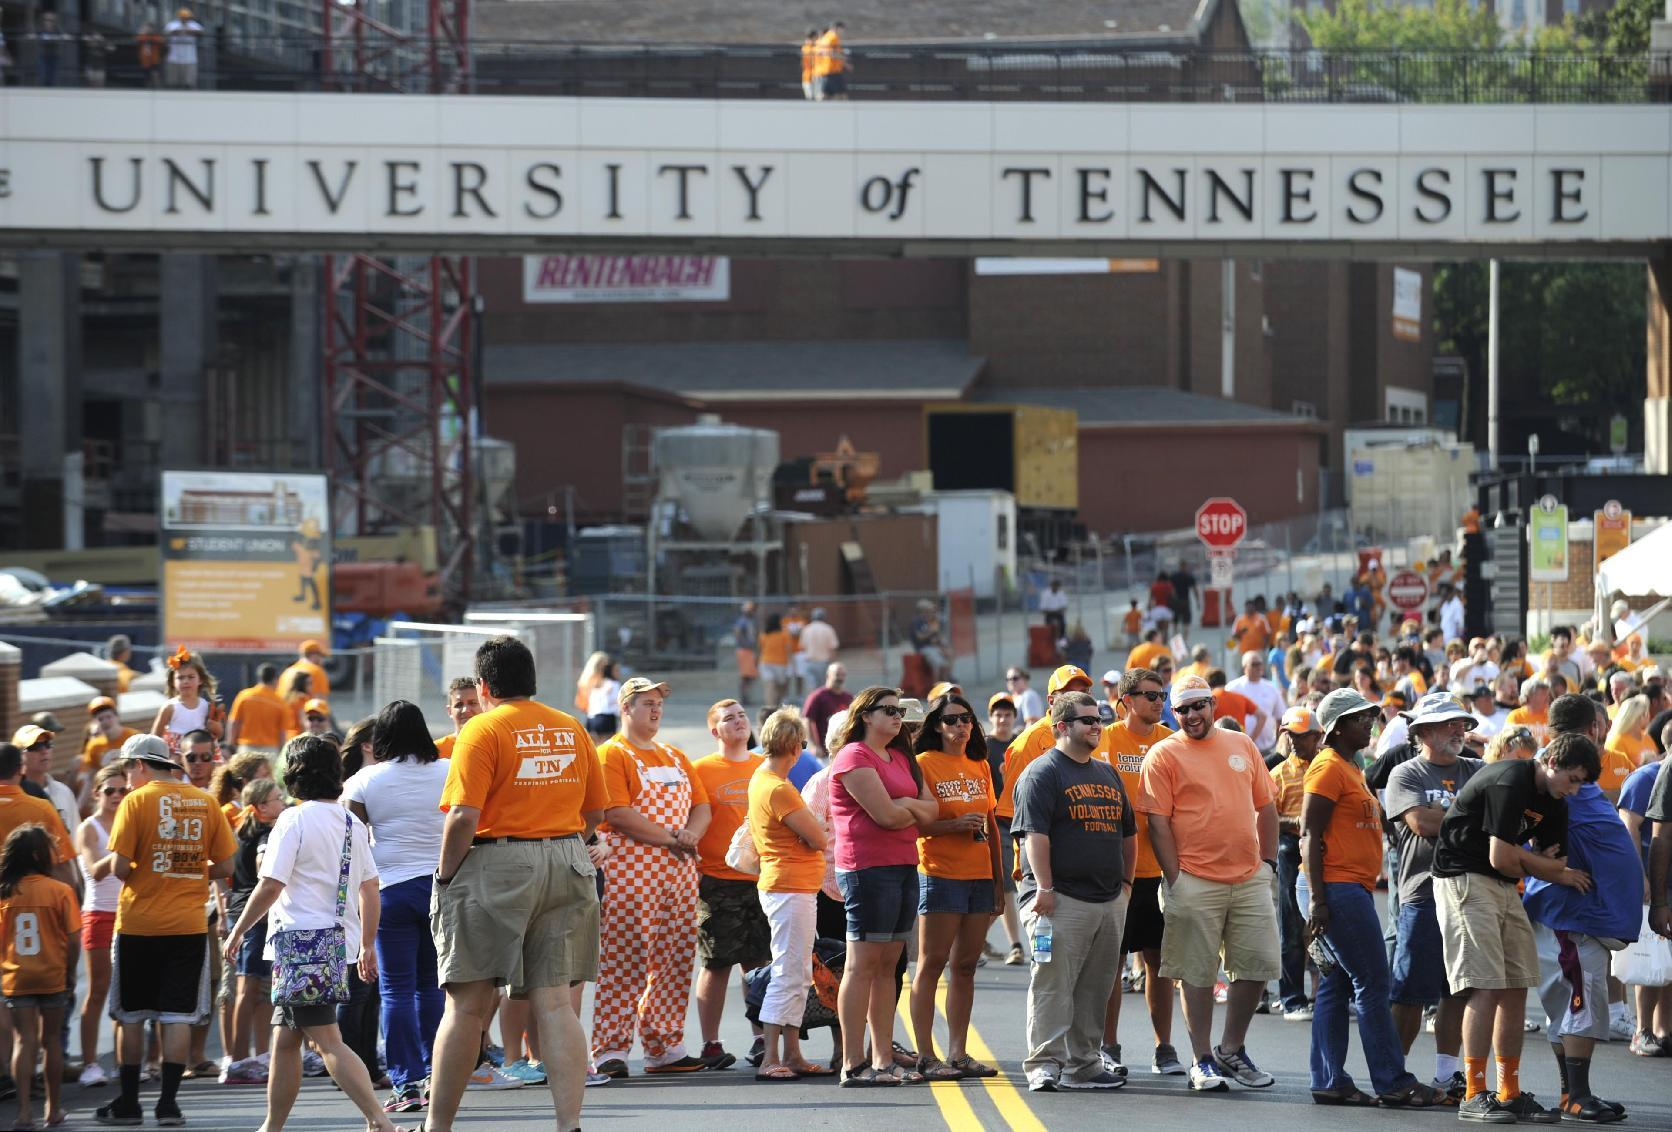 Tennessee faces sexual assault lawsuit involving football players